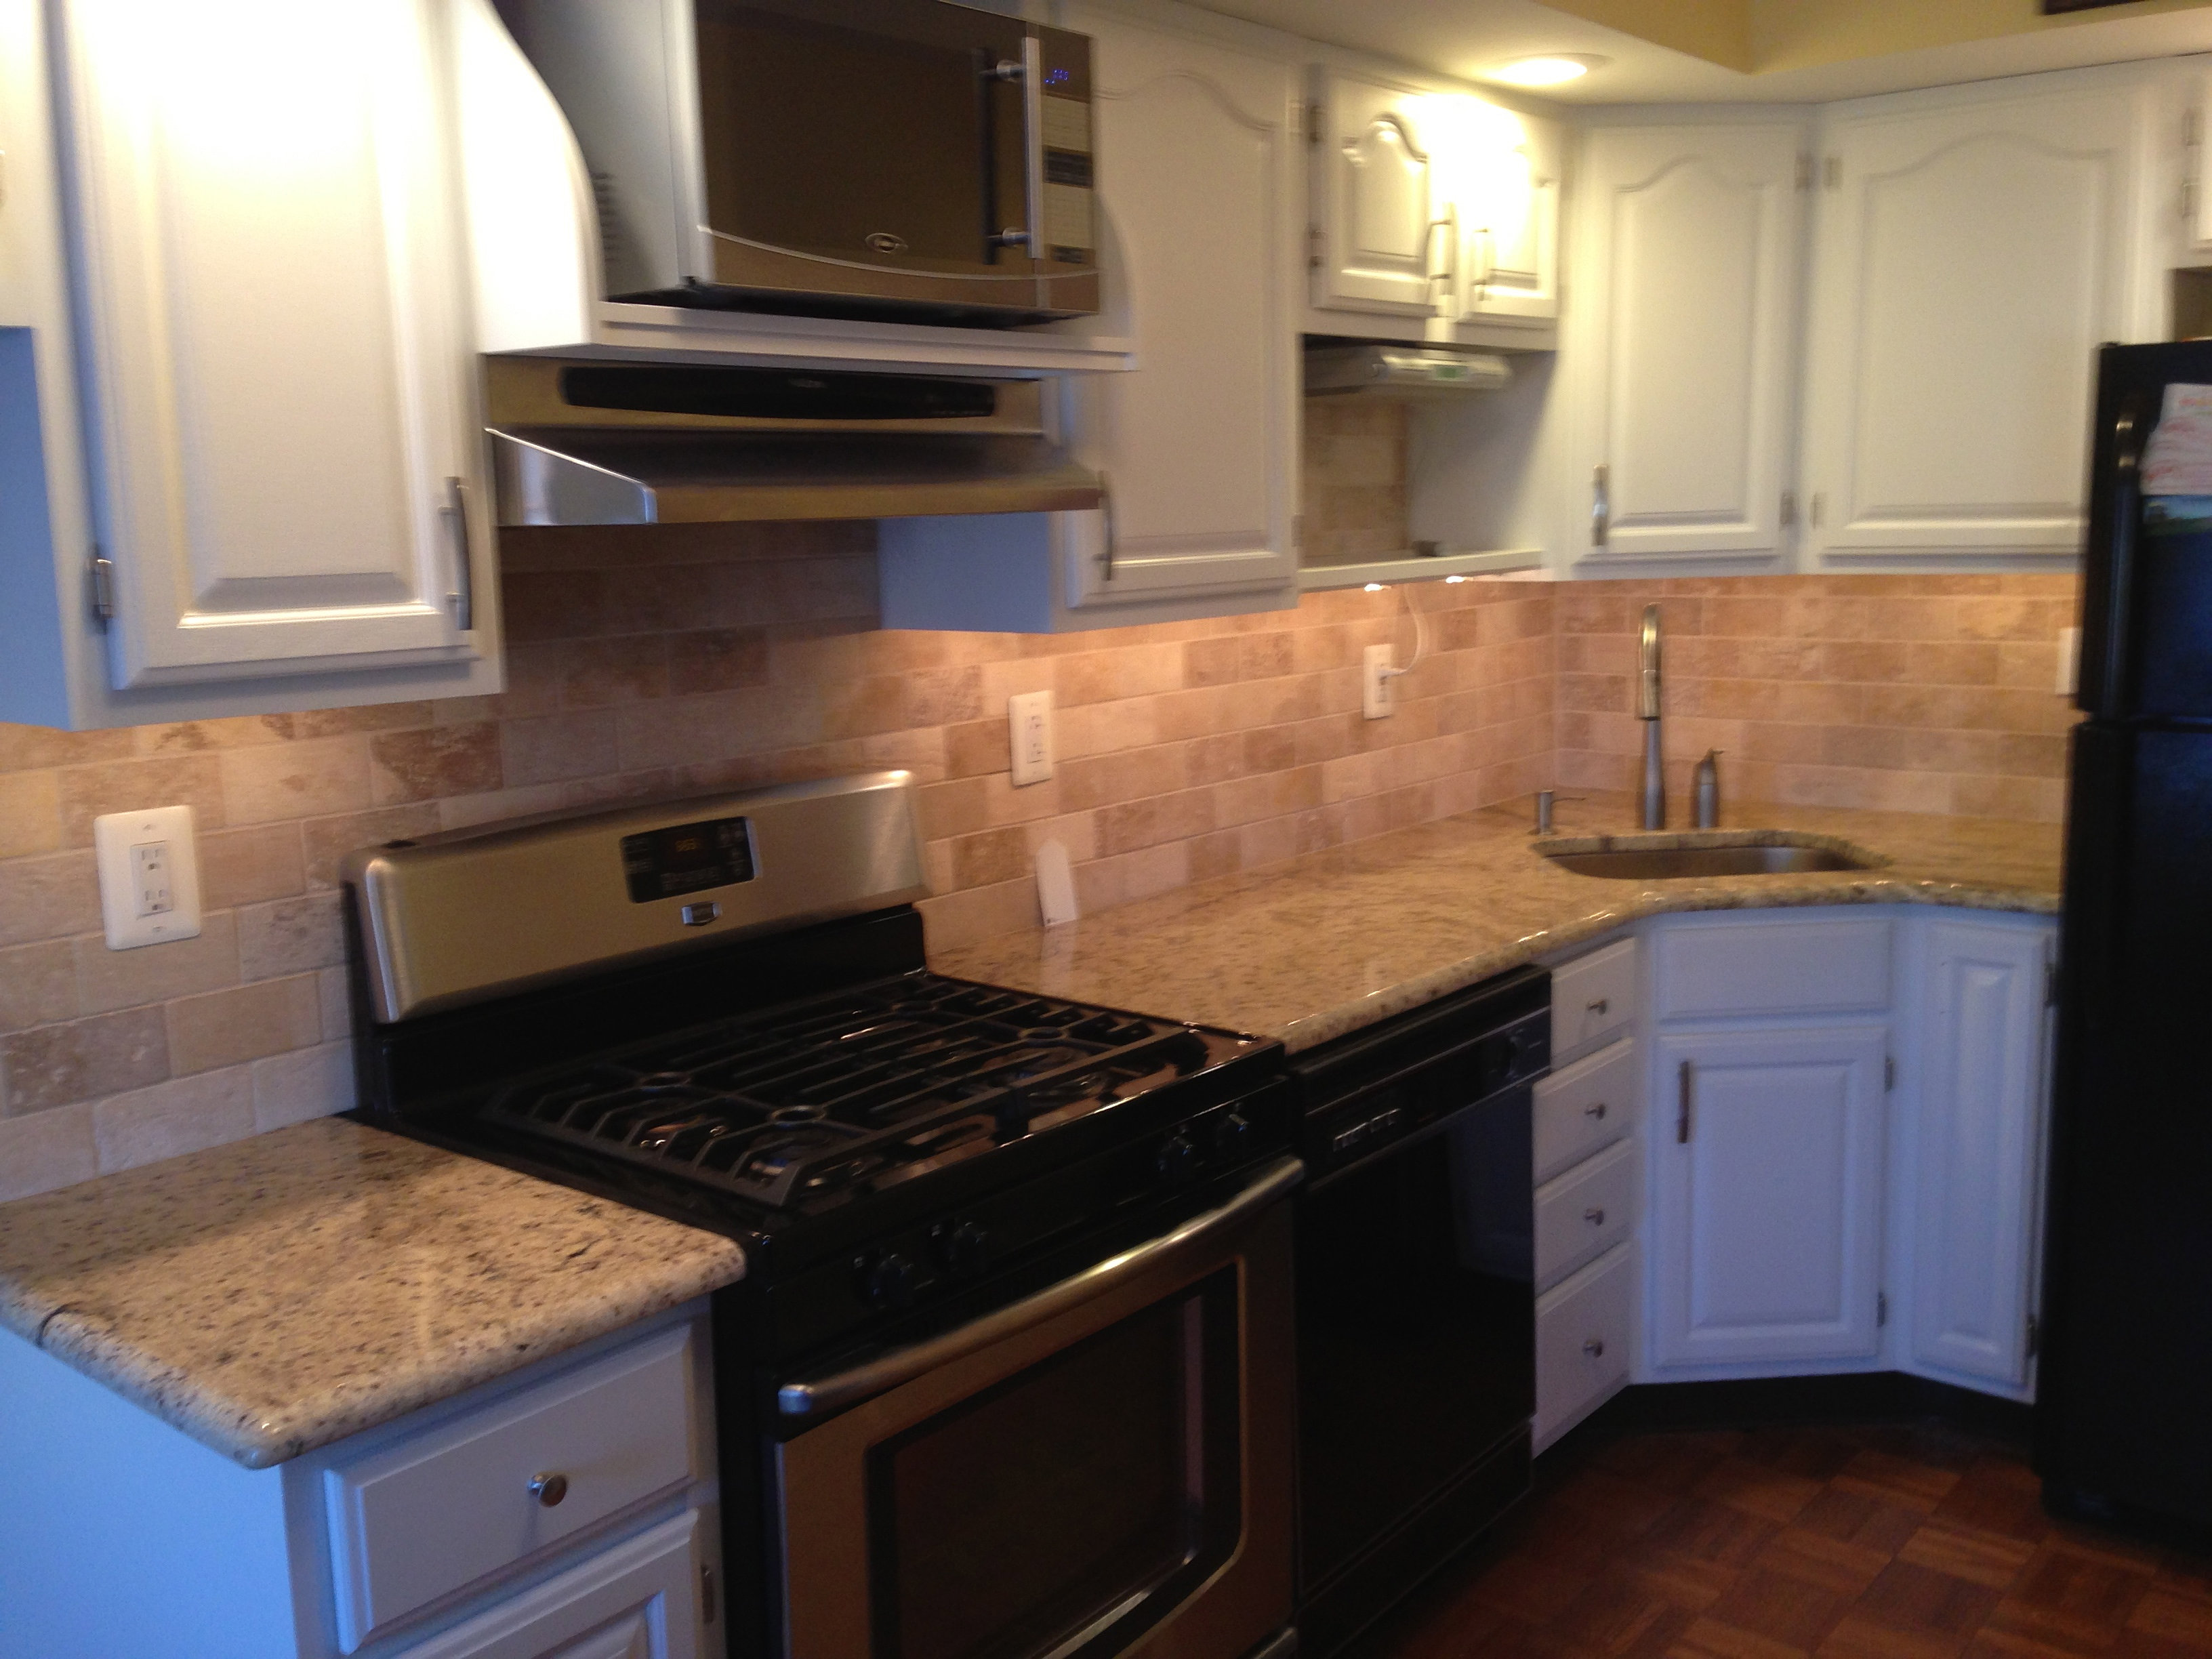 cabinet painters-littrell custom painting-south jersey cabinet painter